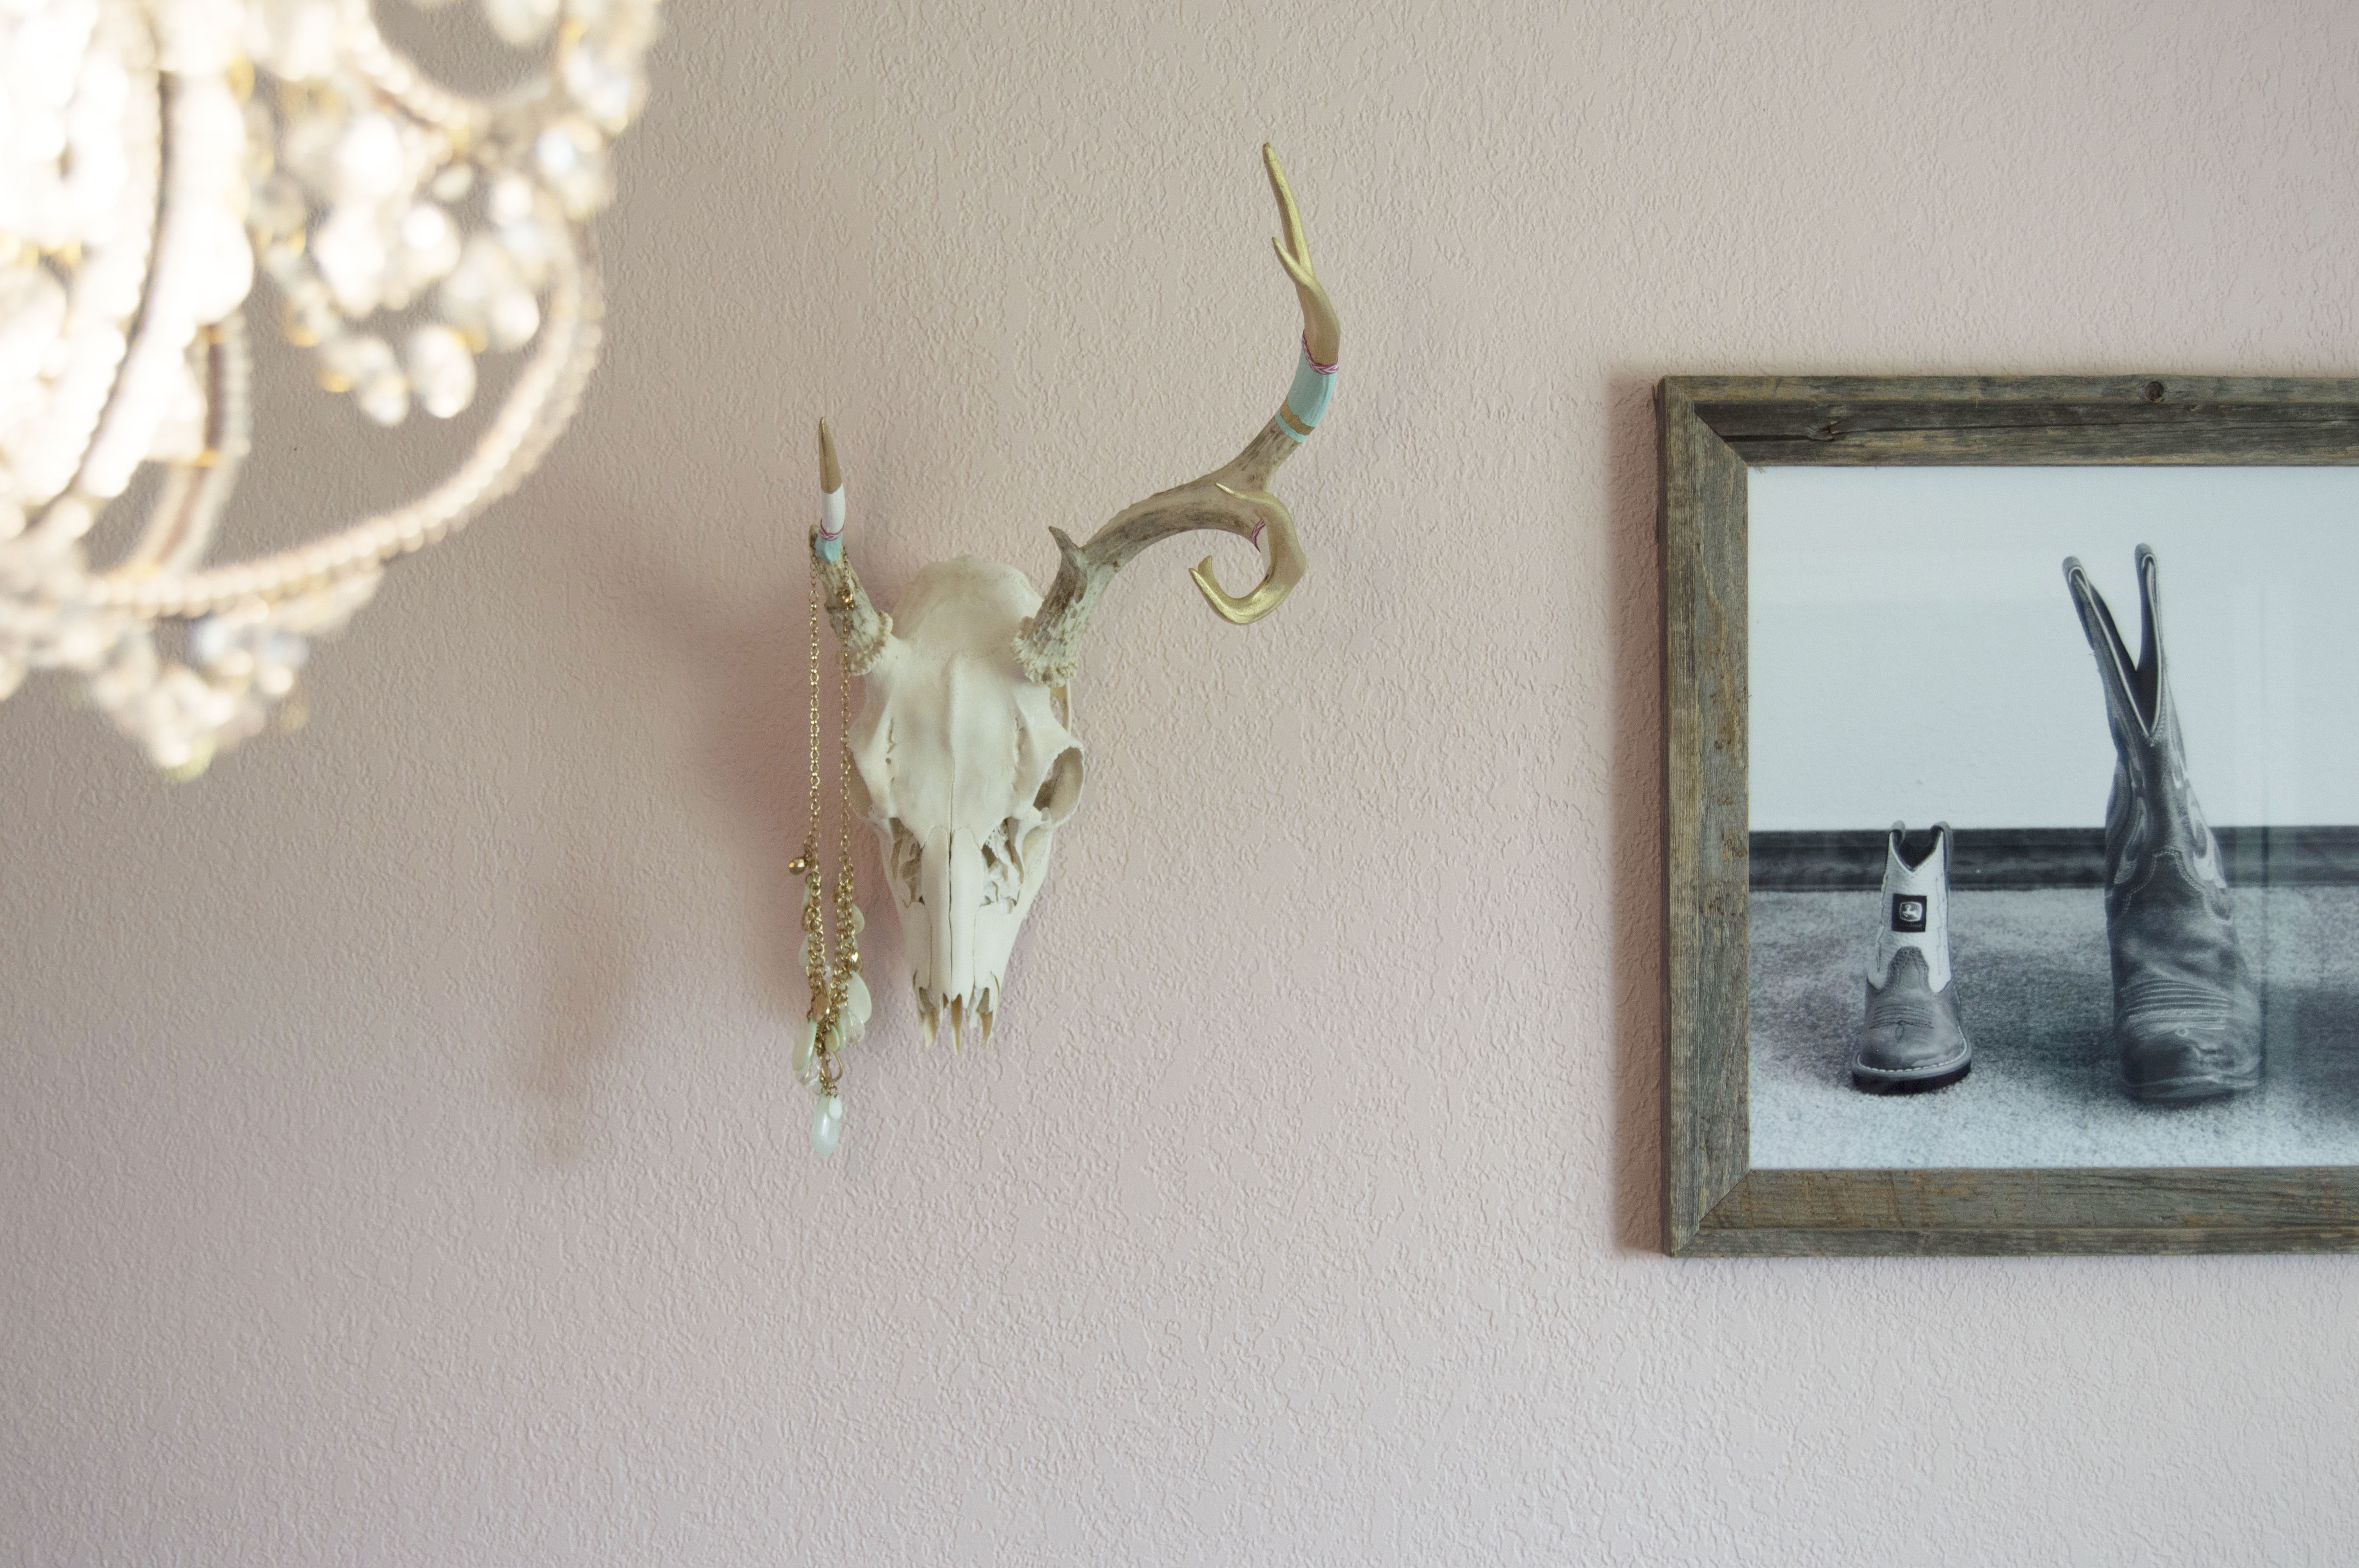 deer antler projects Looking for the perfect antler crafts you can stop your search and come to etsy, the marketplace where sellers around the world express their creativity through handmade and vintage goods.